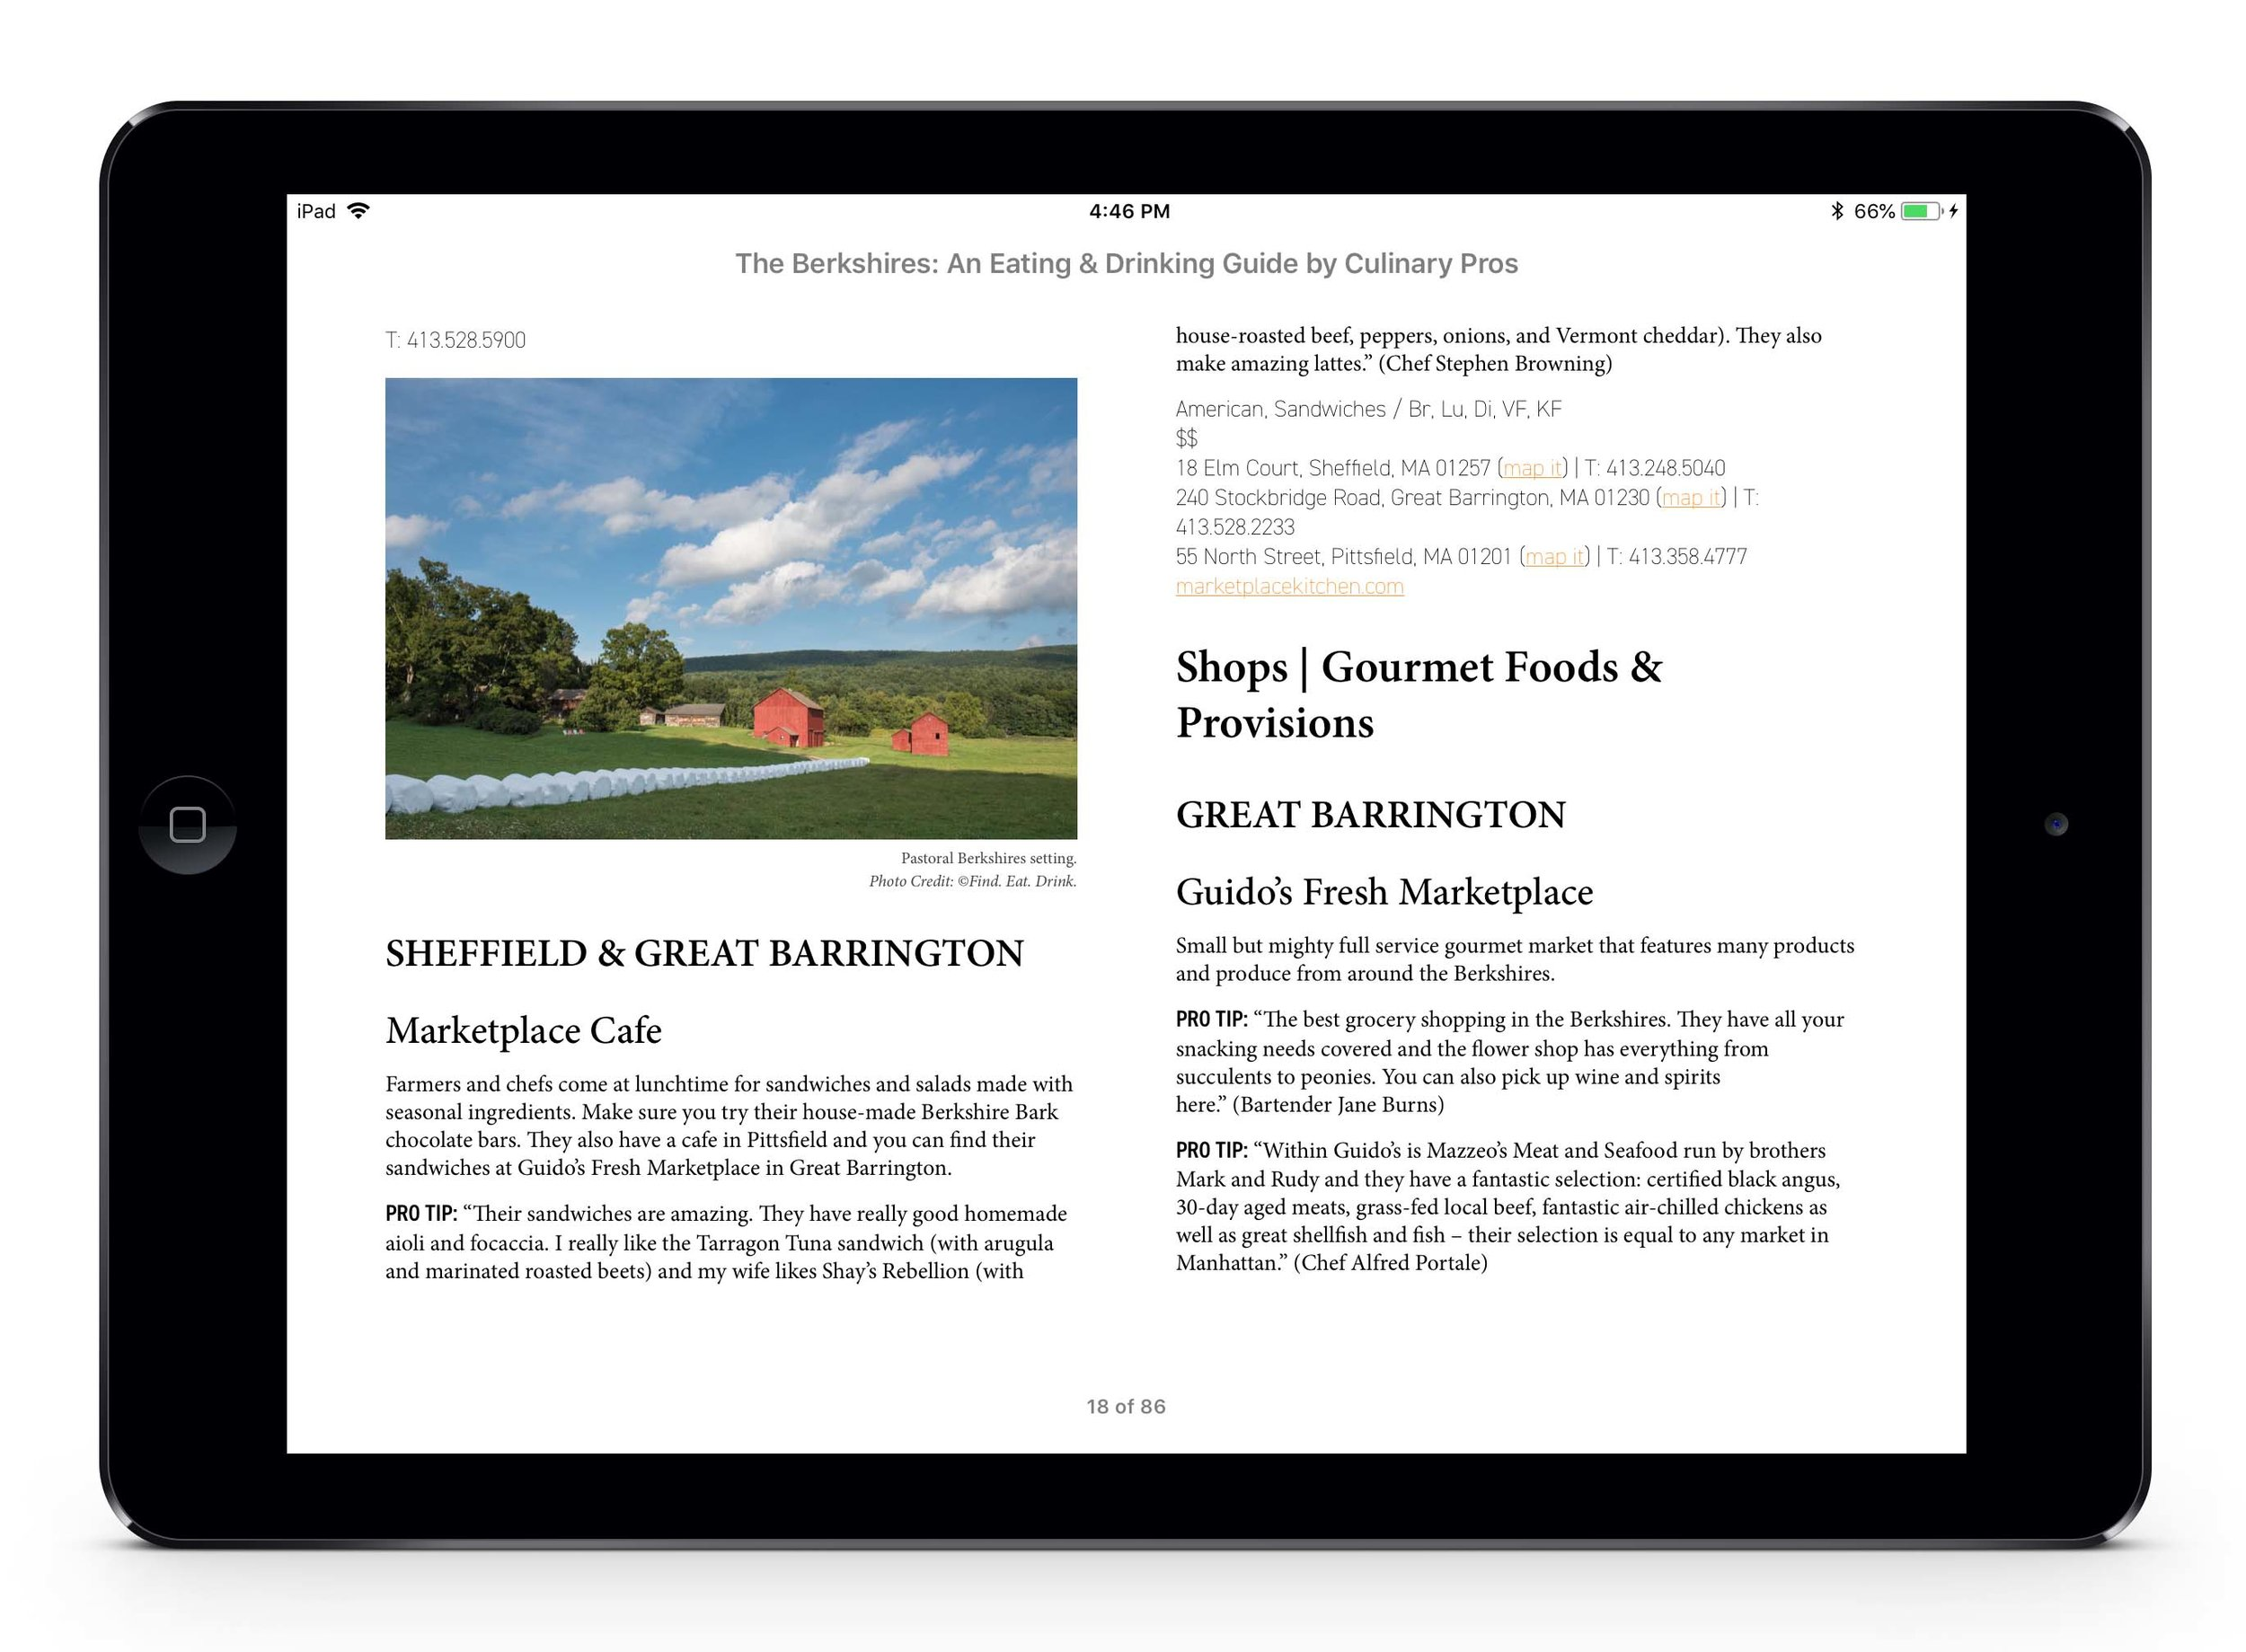 iPadAir_Berkshires_Screenshots_4.14.jpg